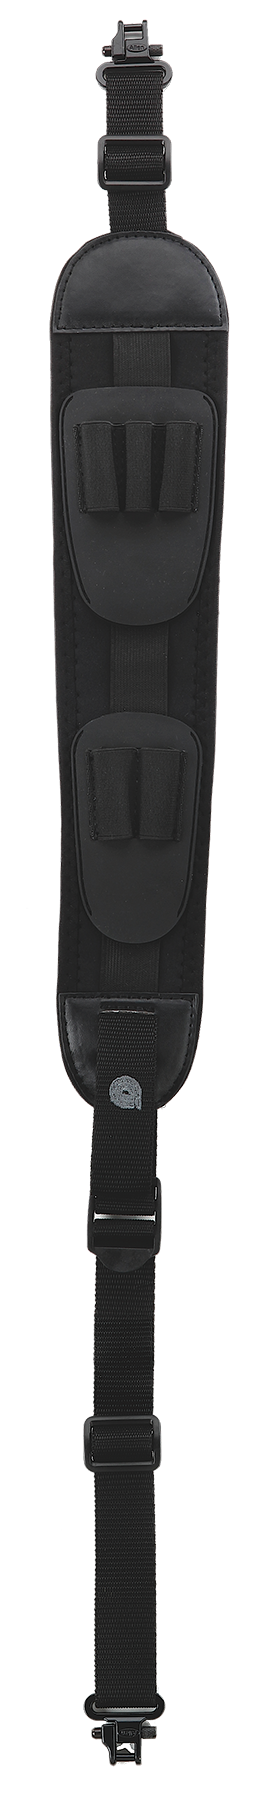 Allen 8888 Denali Rifle Sling Black